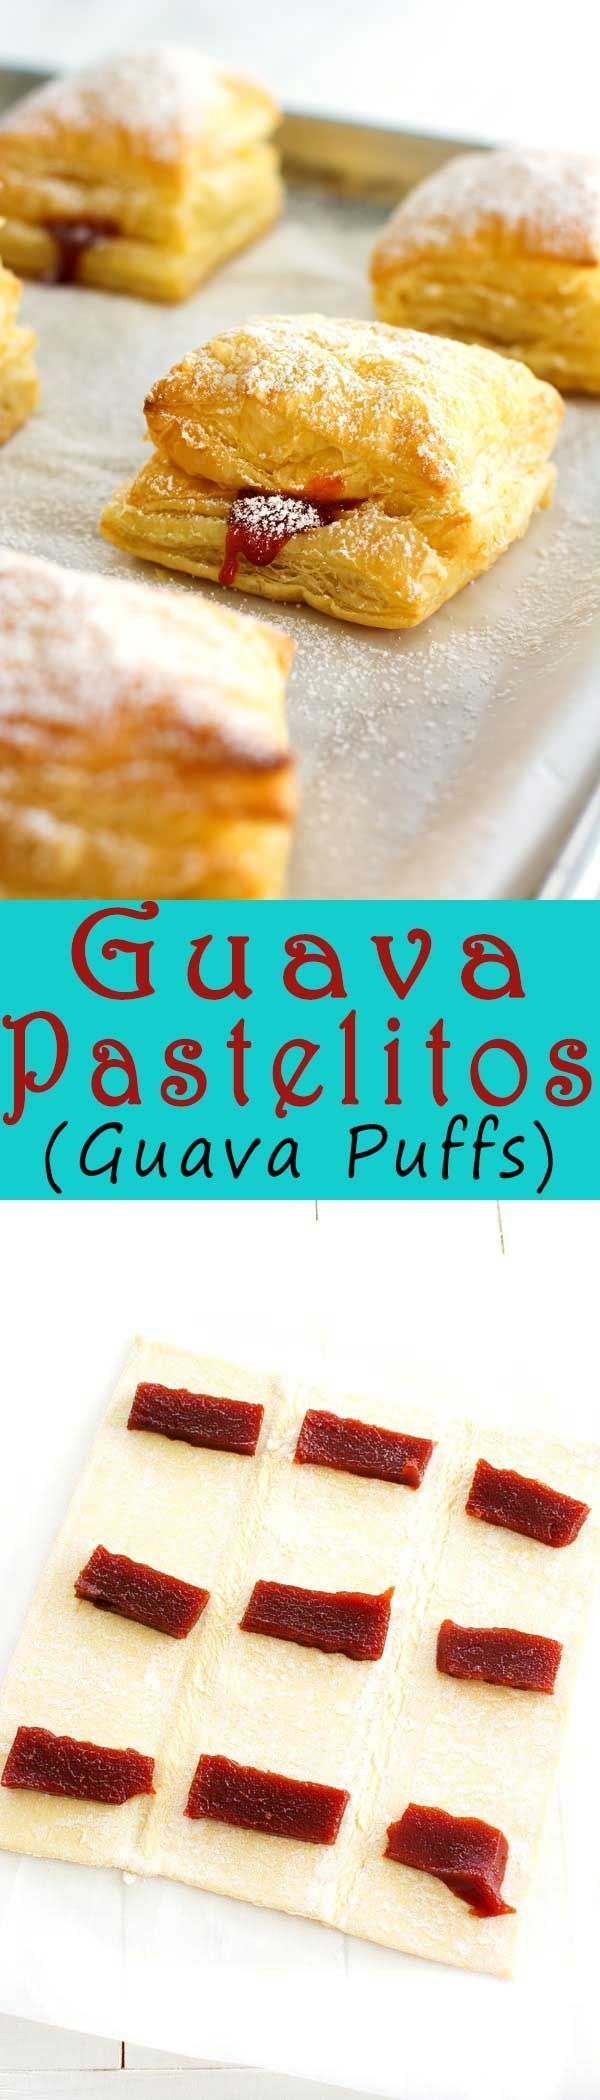 Guava pastelitos guava pastry made with puff pastry and guava food forumfinder Images